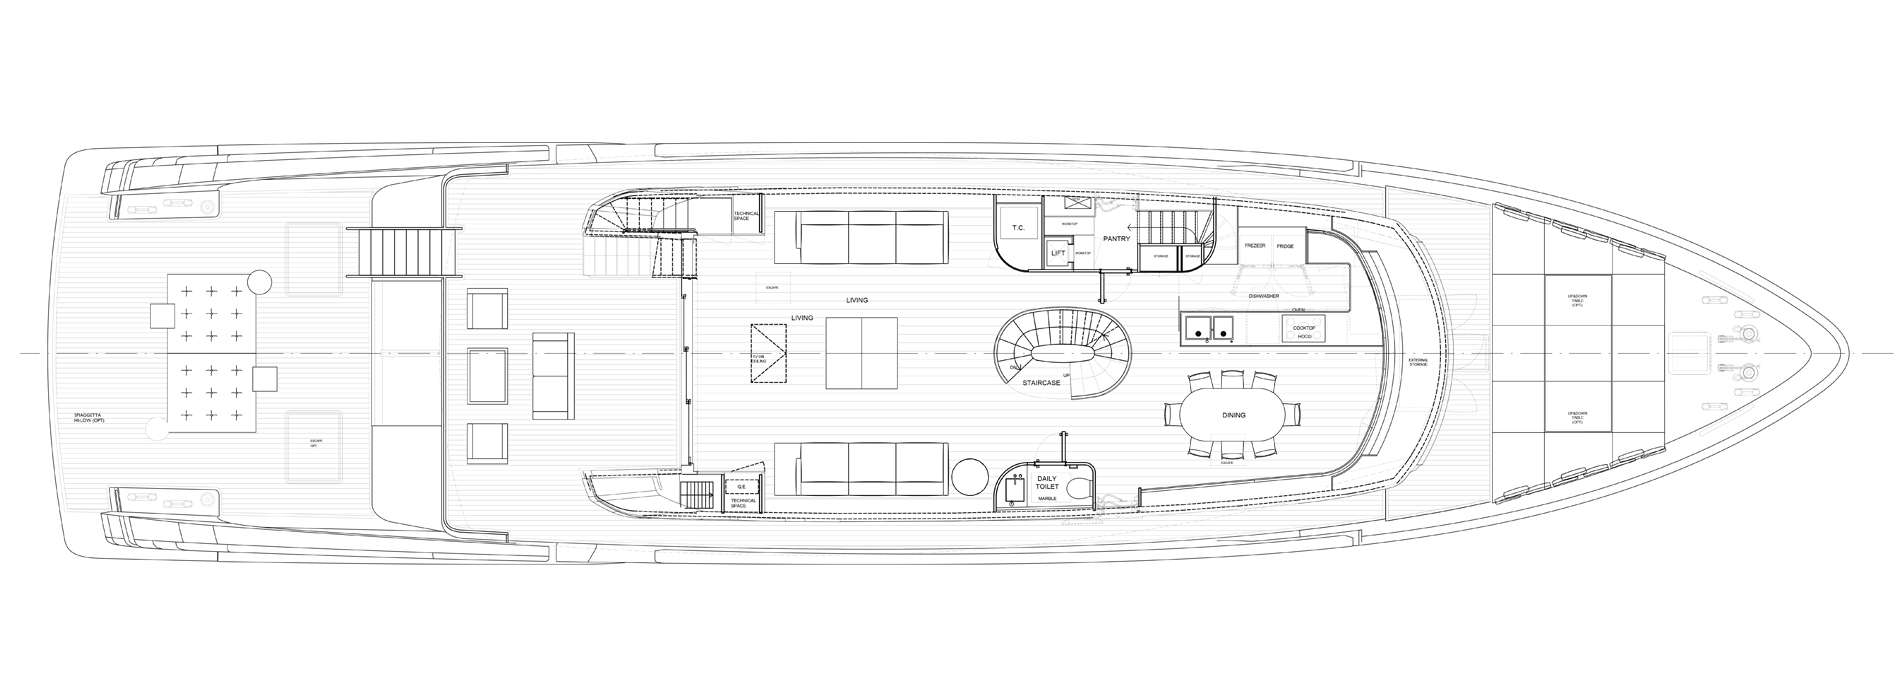 Sanlorenzo Yachts SX112 Main deck Version B